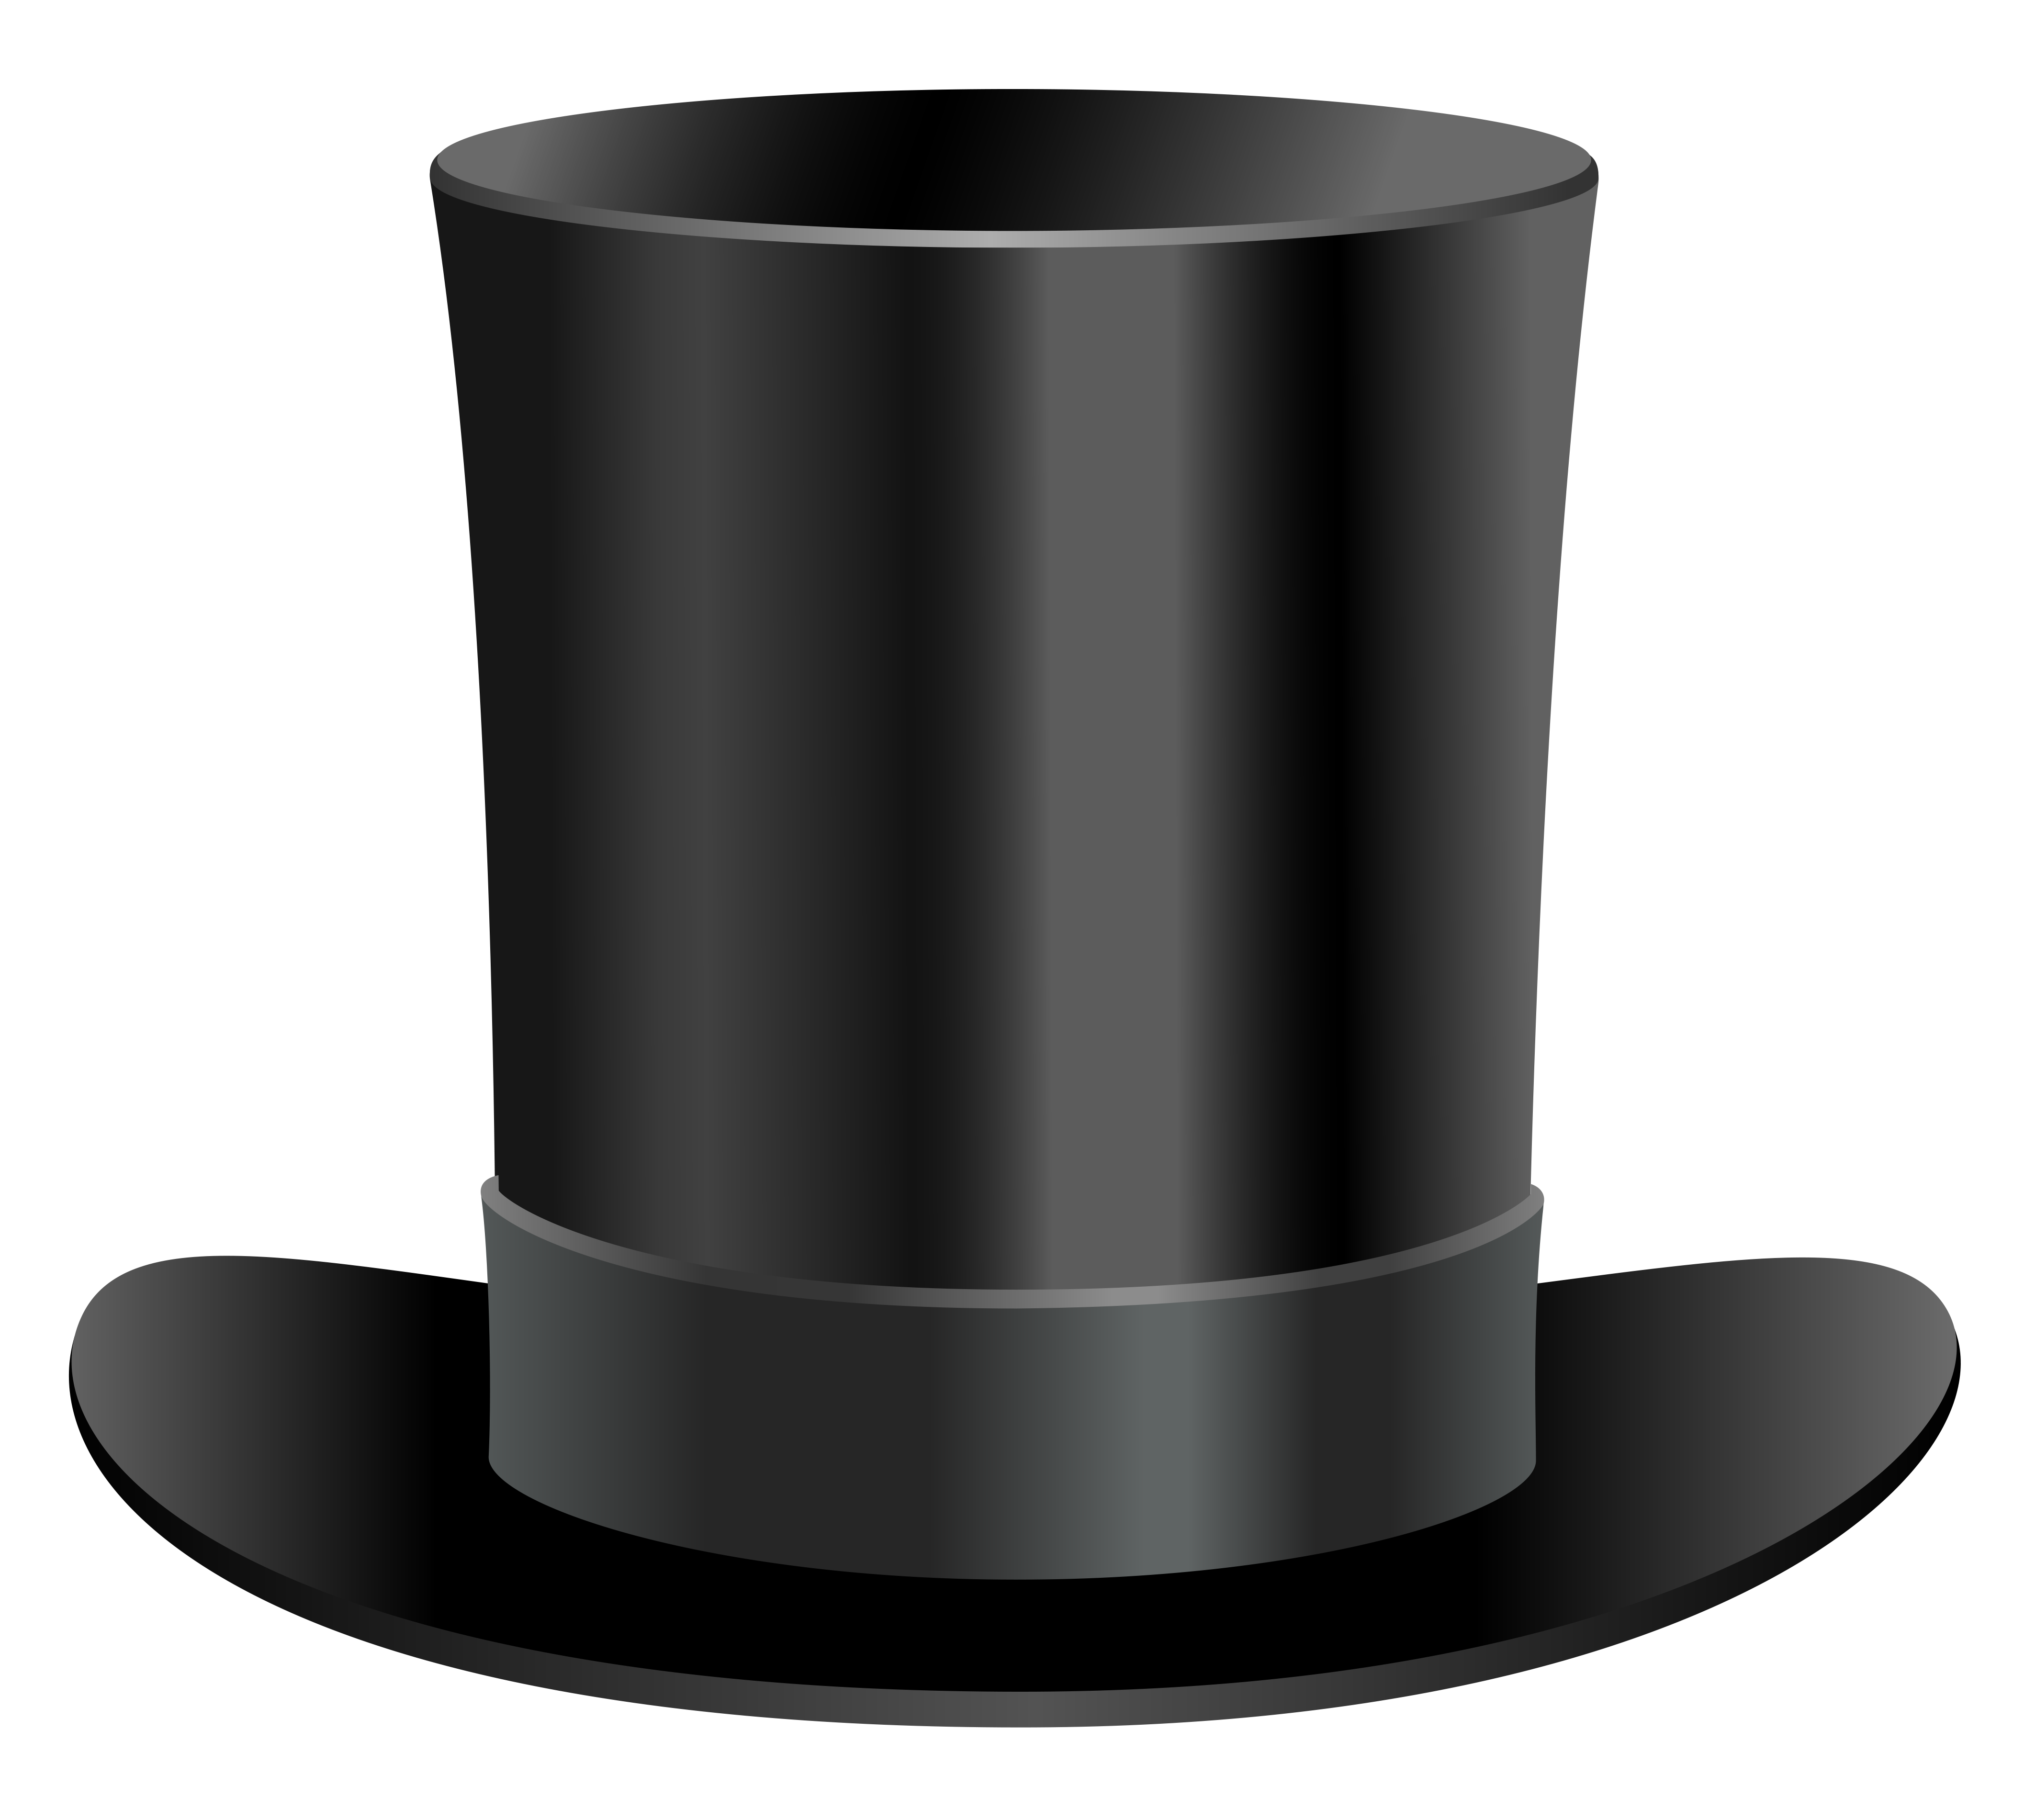 Top hat transparent png. Black clipart gallery yopriceville